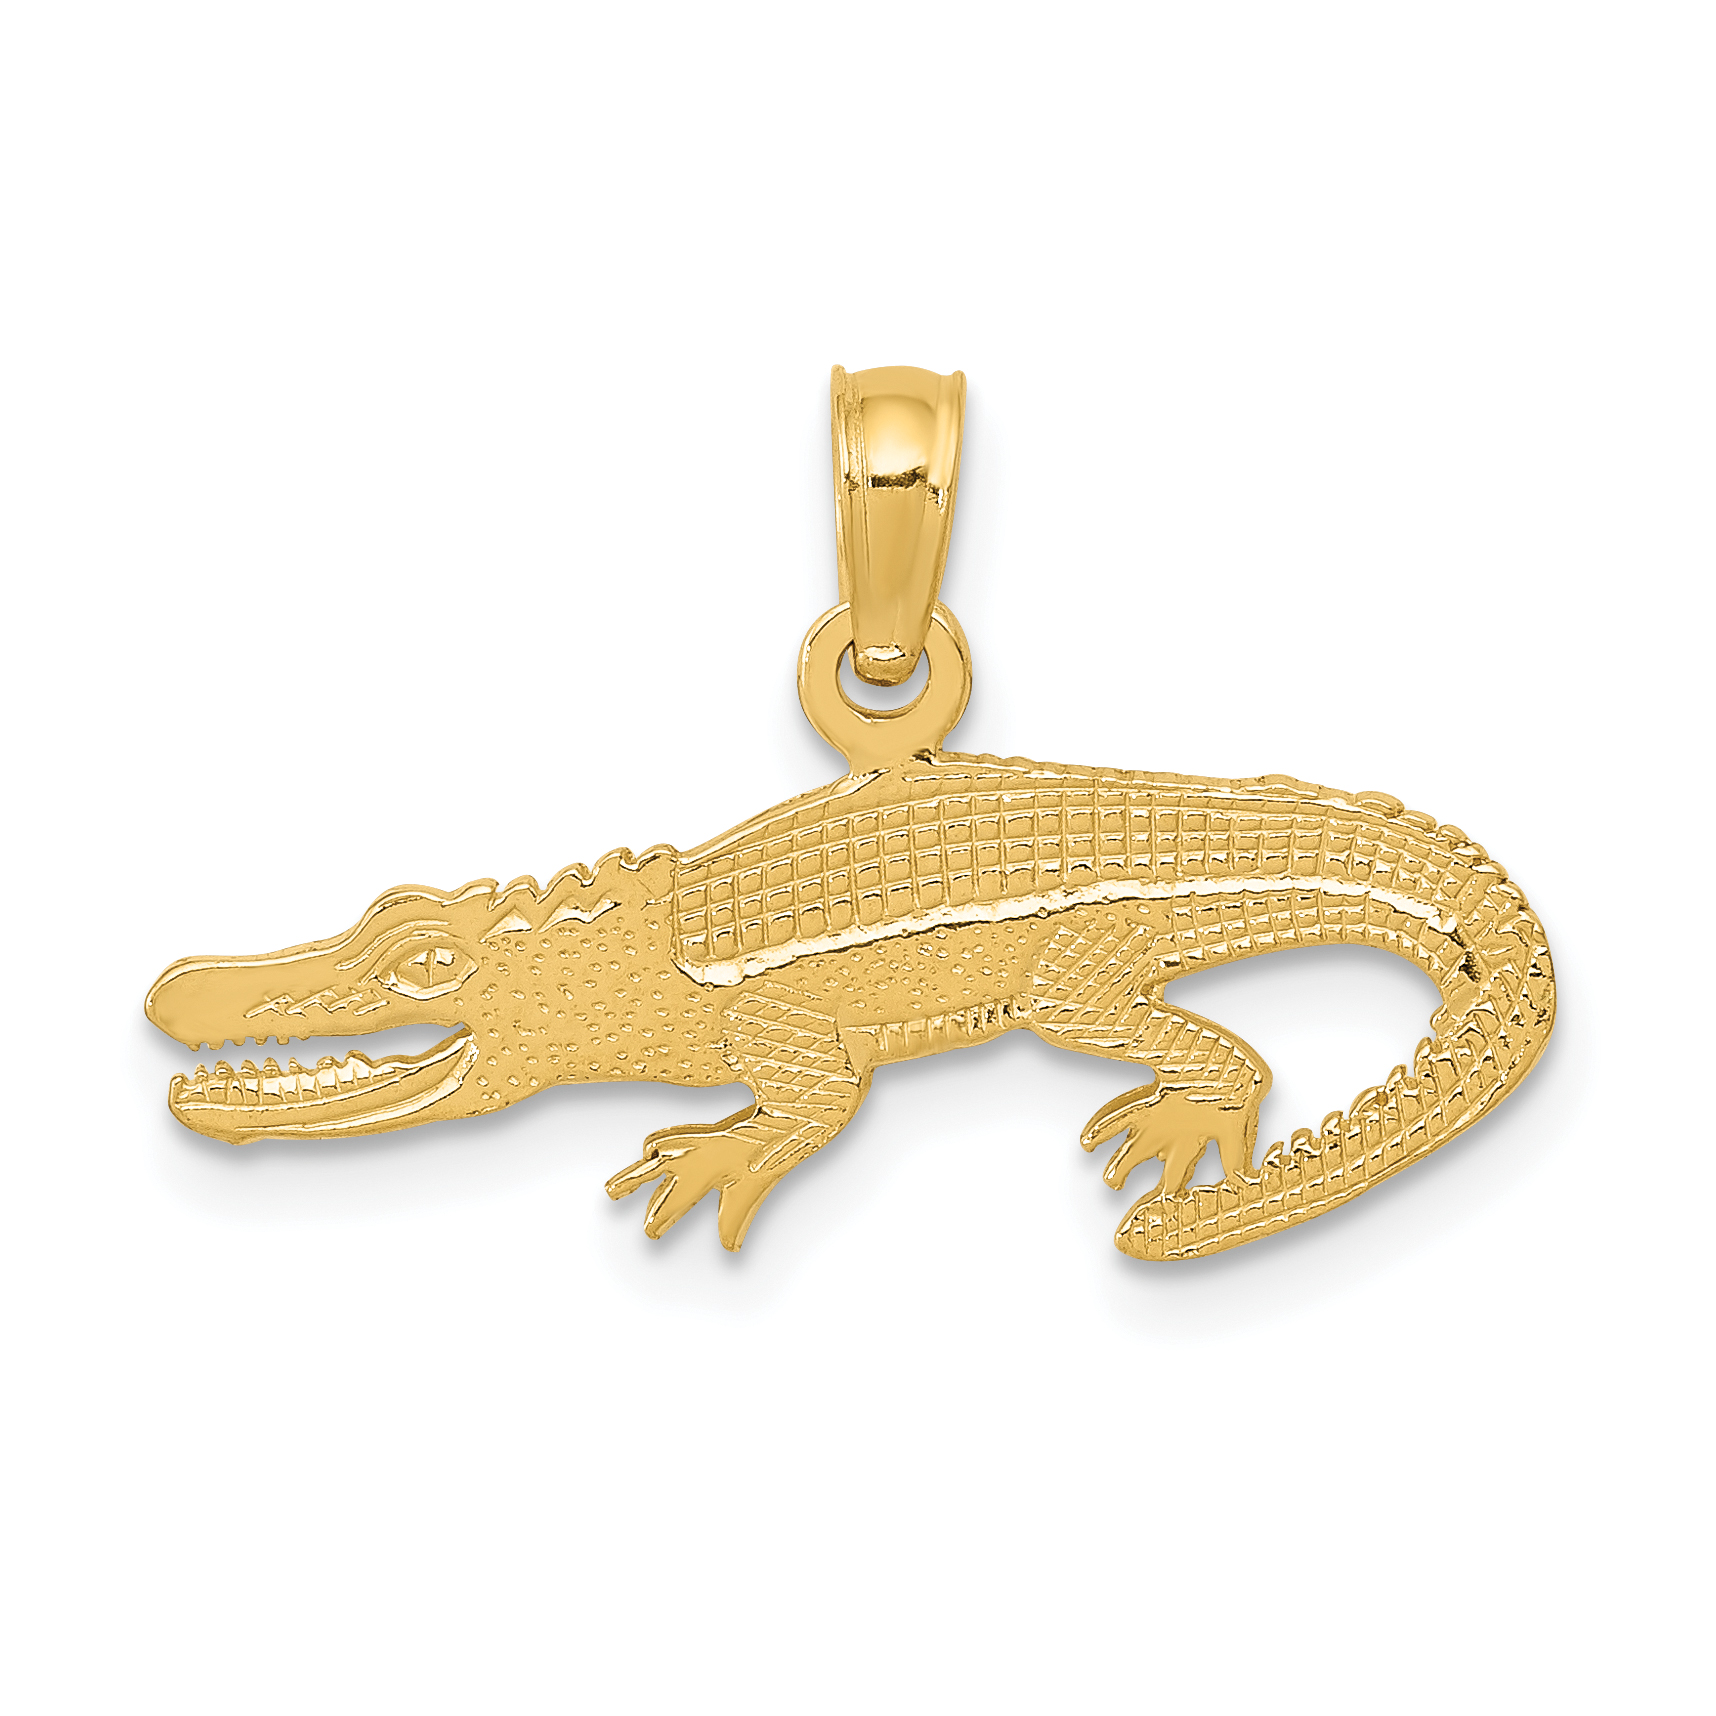 14k Yellow Gold Textured Alligator Pendant Charm Necklace Animal Crocodile Man Fine Jewelry Gift For Dad Mens For Him - image 2 of 2